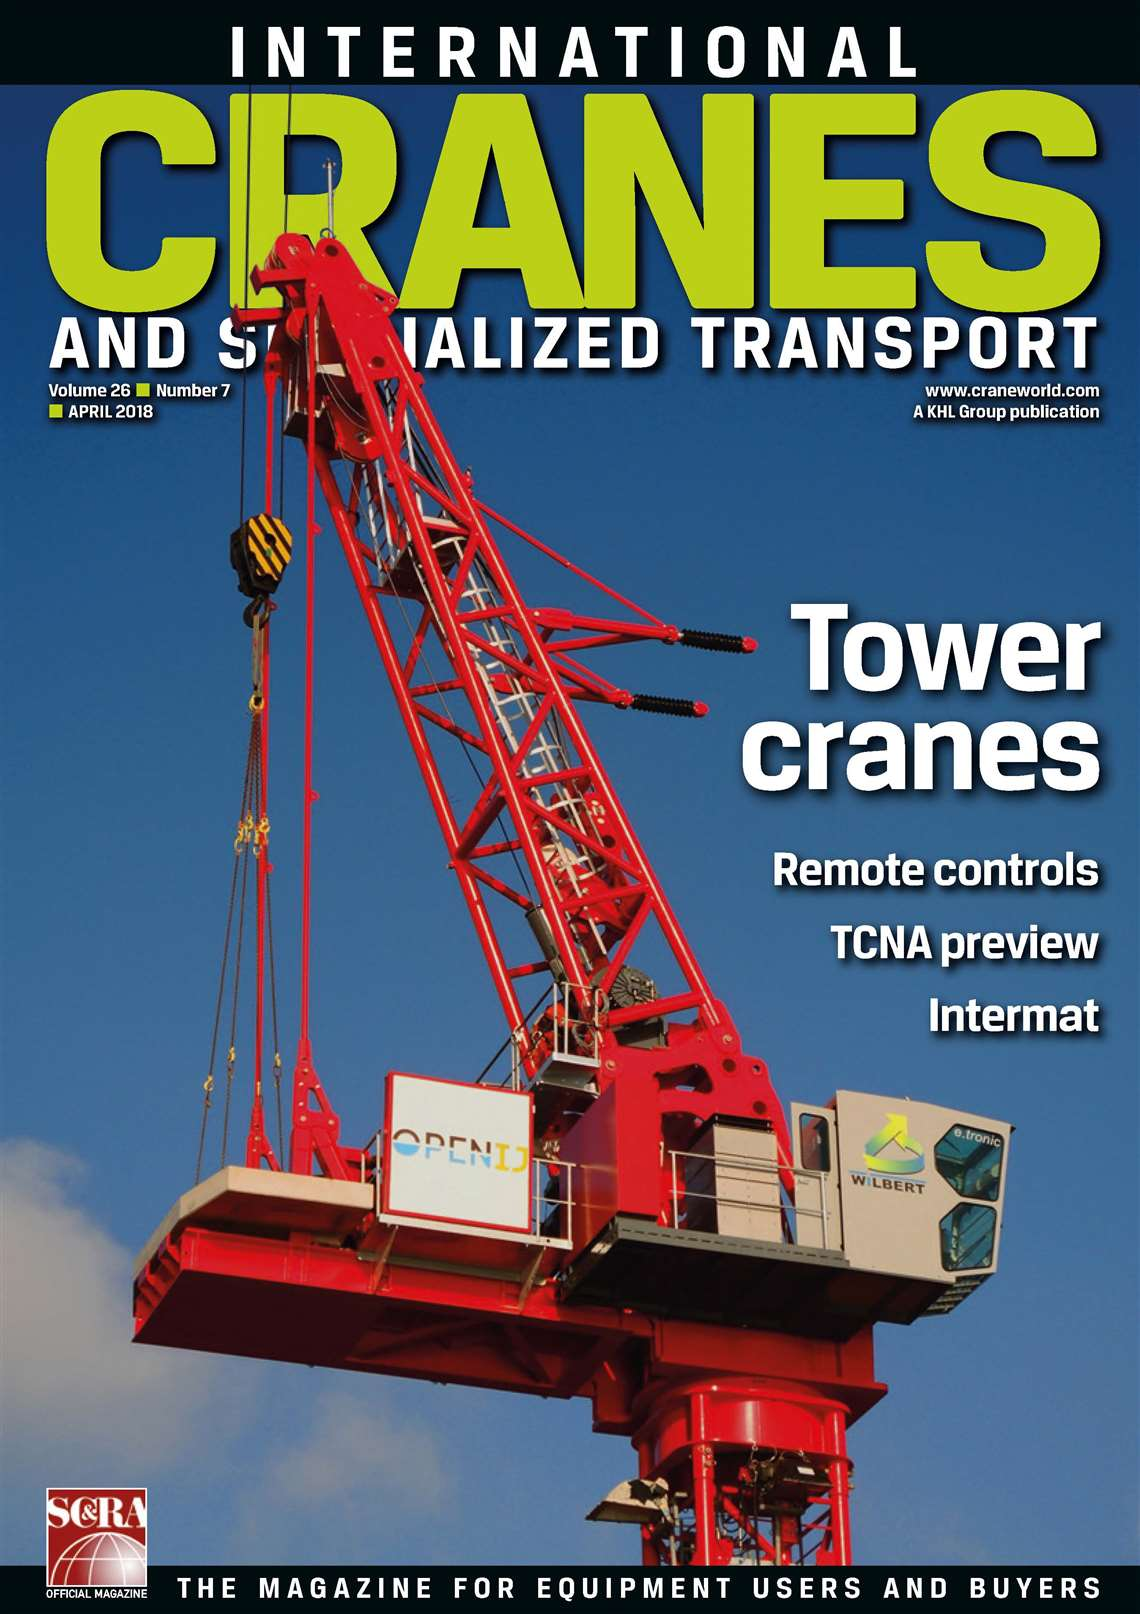 International Cranes and Specialized Transport - April 2018